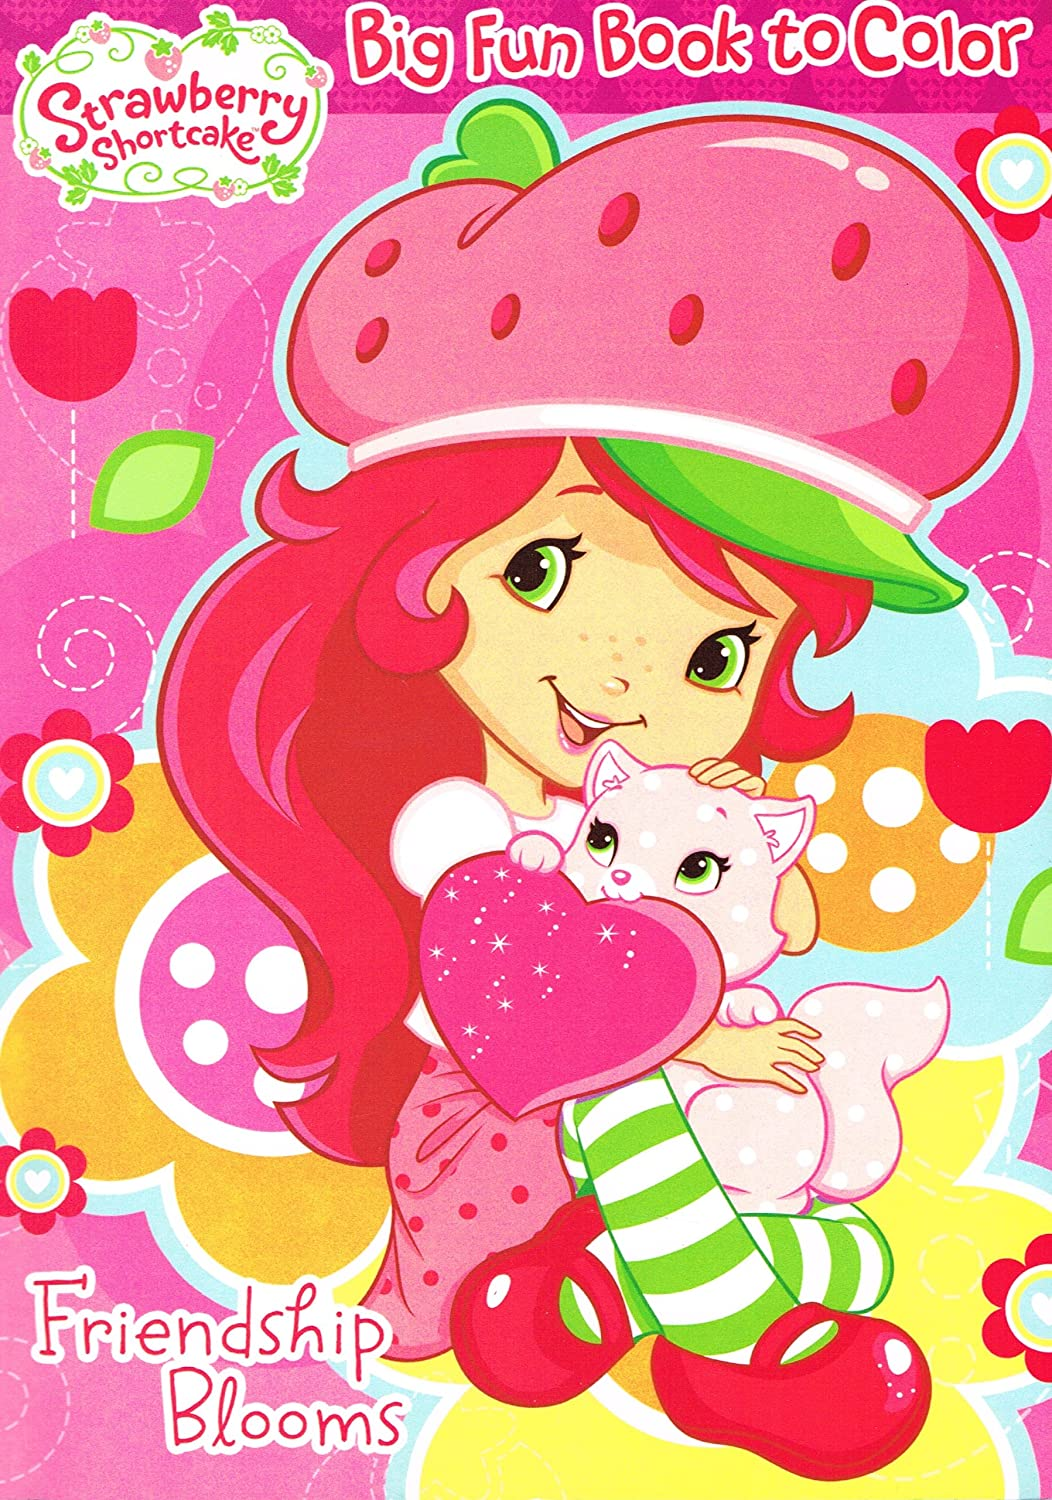 - Amazon.com: 1 Piece Of Strawberry Shortcake Coloring Book - 96p